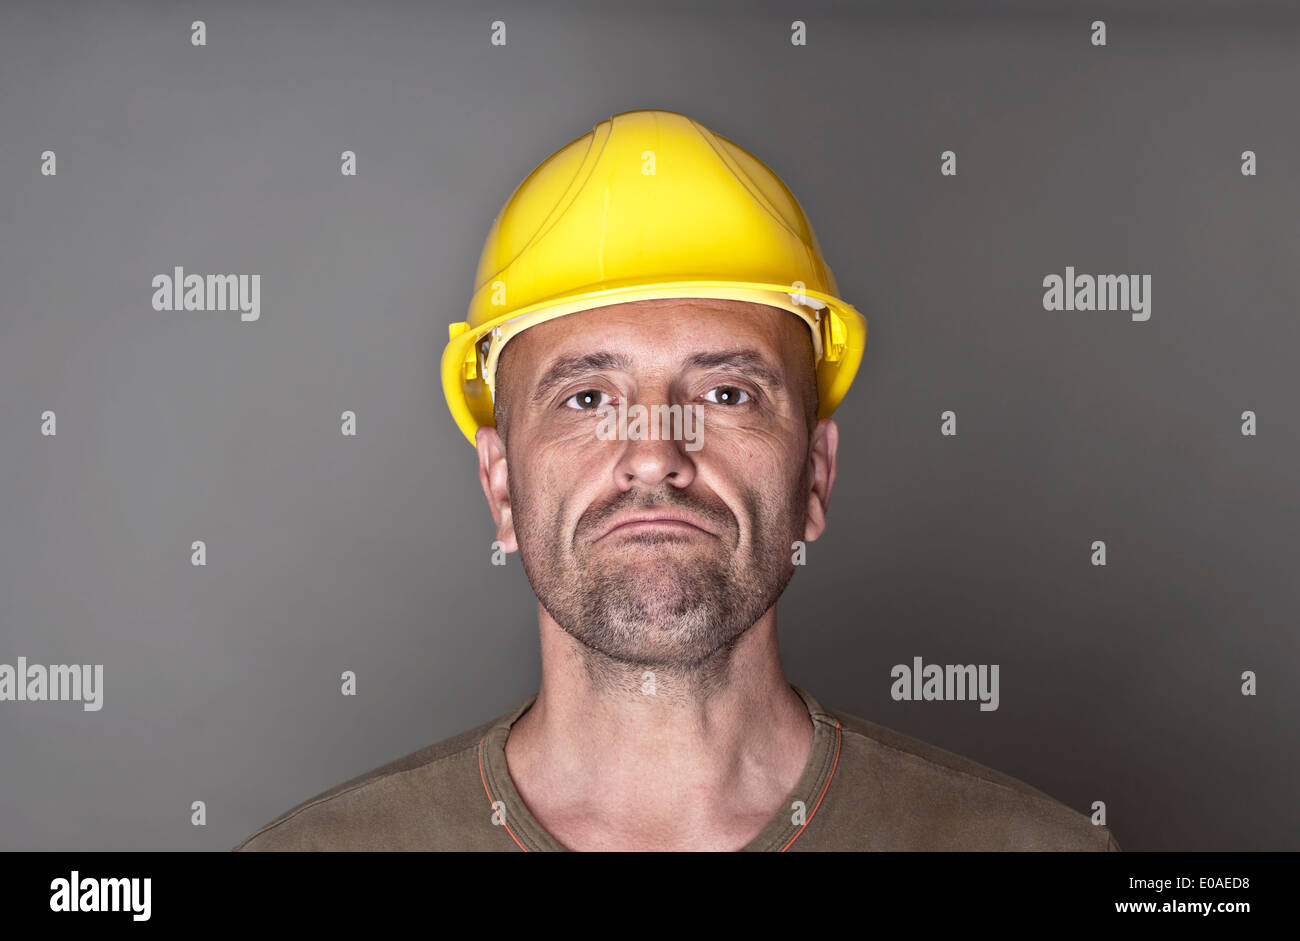 Portrait of an unhappy, skeptical worker with yellow hardhat - Stock Image